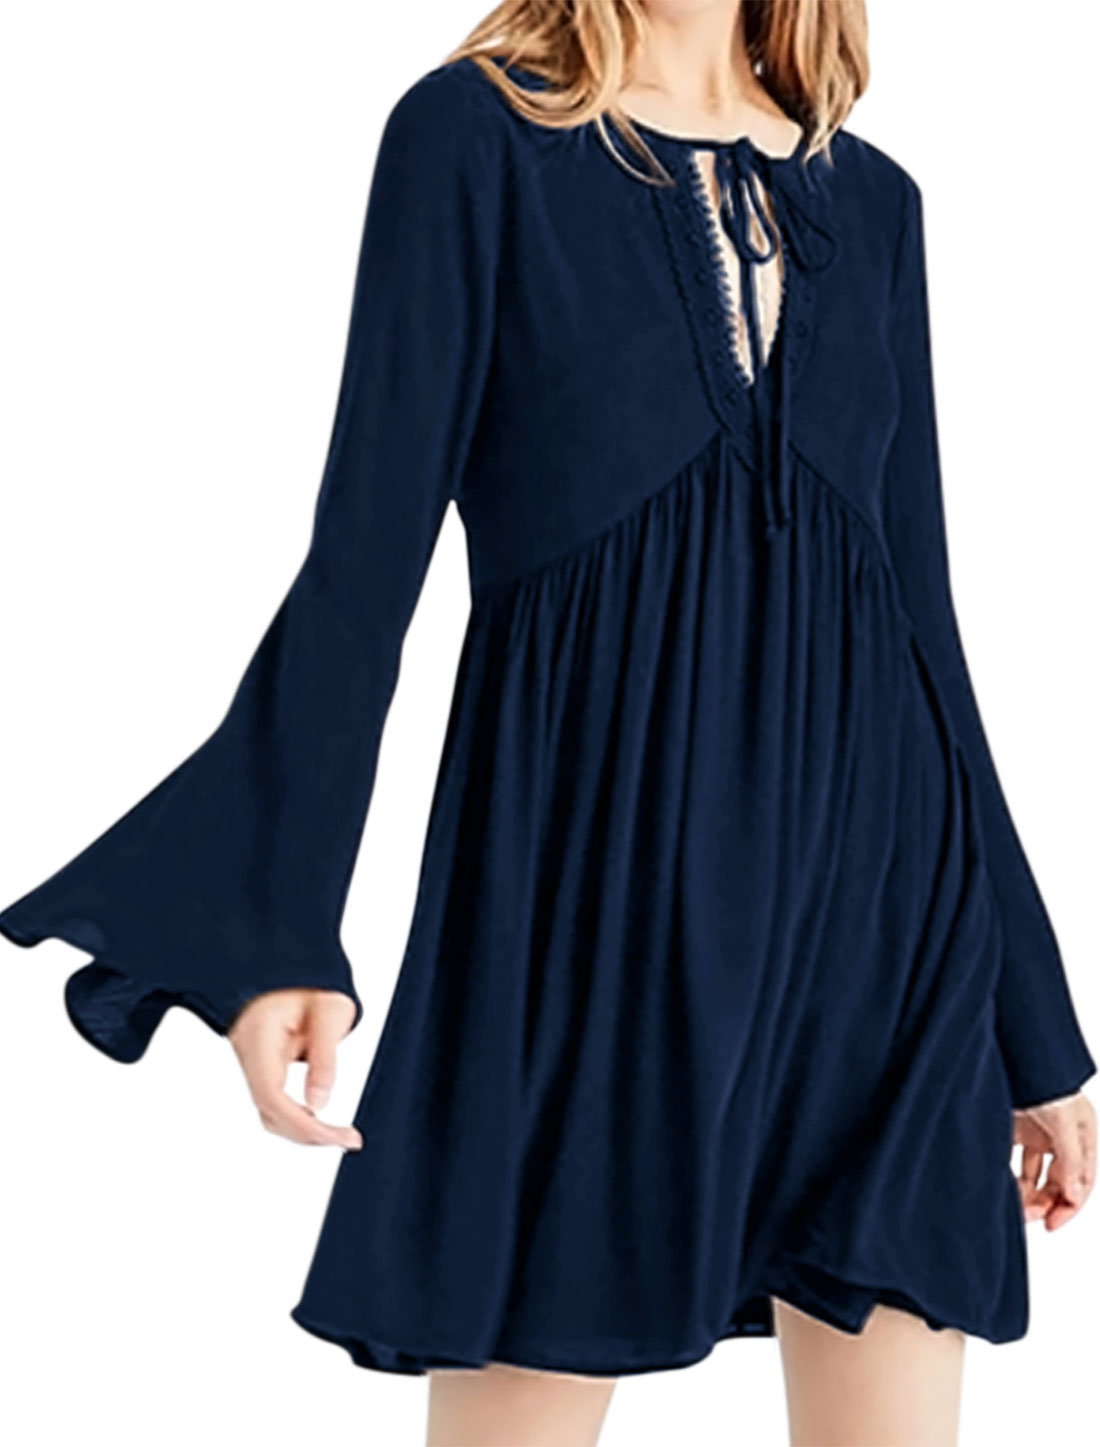 Women Self Tie Neck Bell Sleeve Cut Out Back Tunic Chiffon Dress Blue L